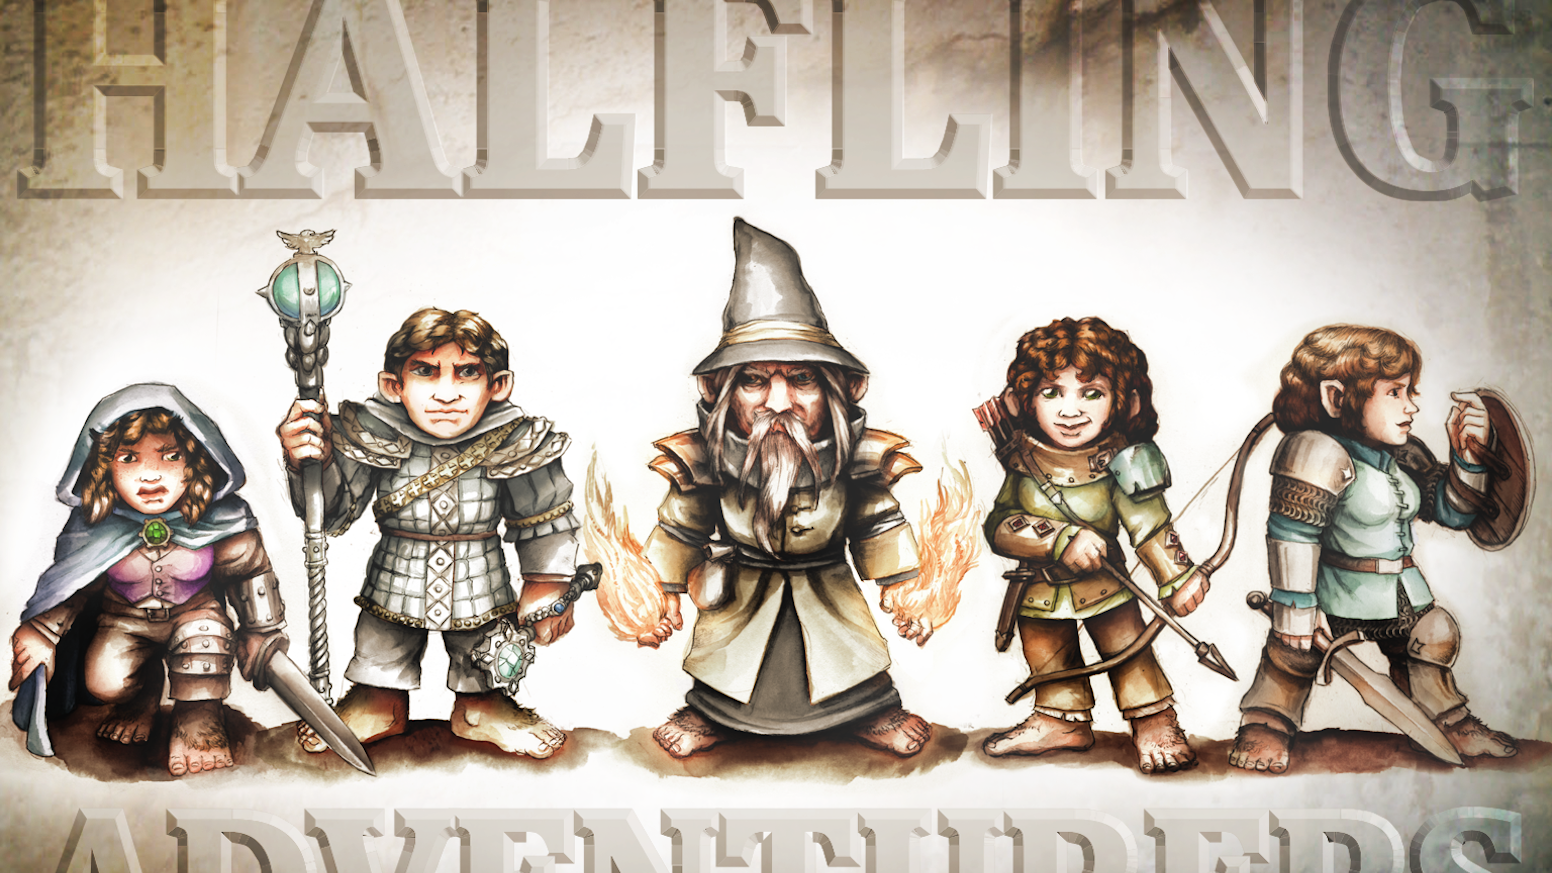 The Halfling Adventurers Project will produce a set of Halfling hero miniatures for dungeon-crawling, RPGs and 28mm tabletop wargames.